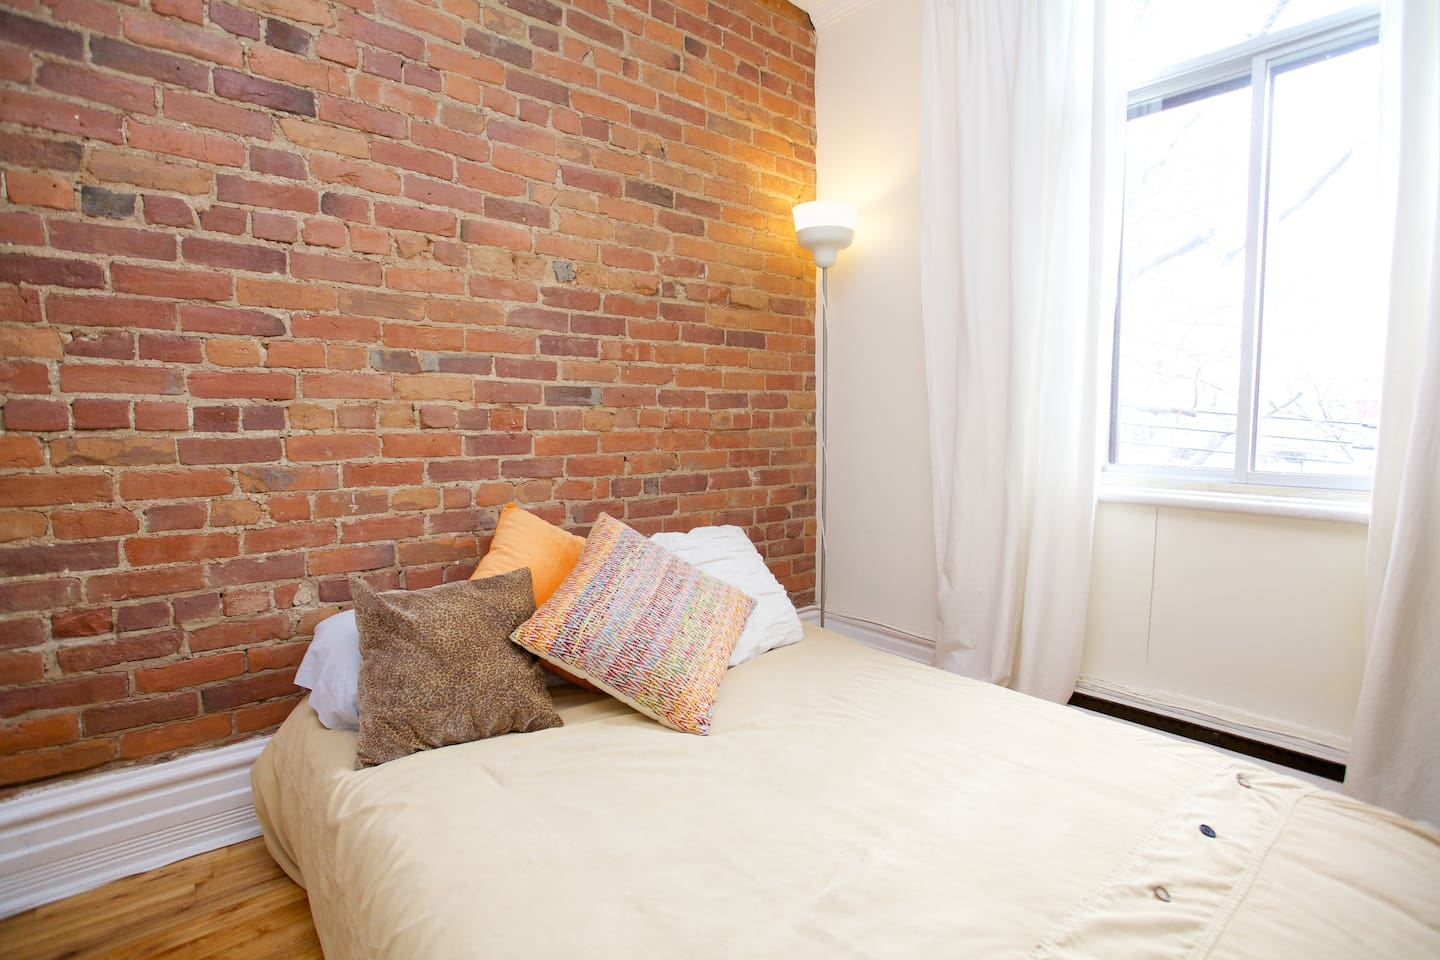 The Brick Furniture Kitchener One Beautiful Bricked Plateau Room Apartments For Rent In